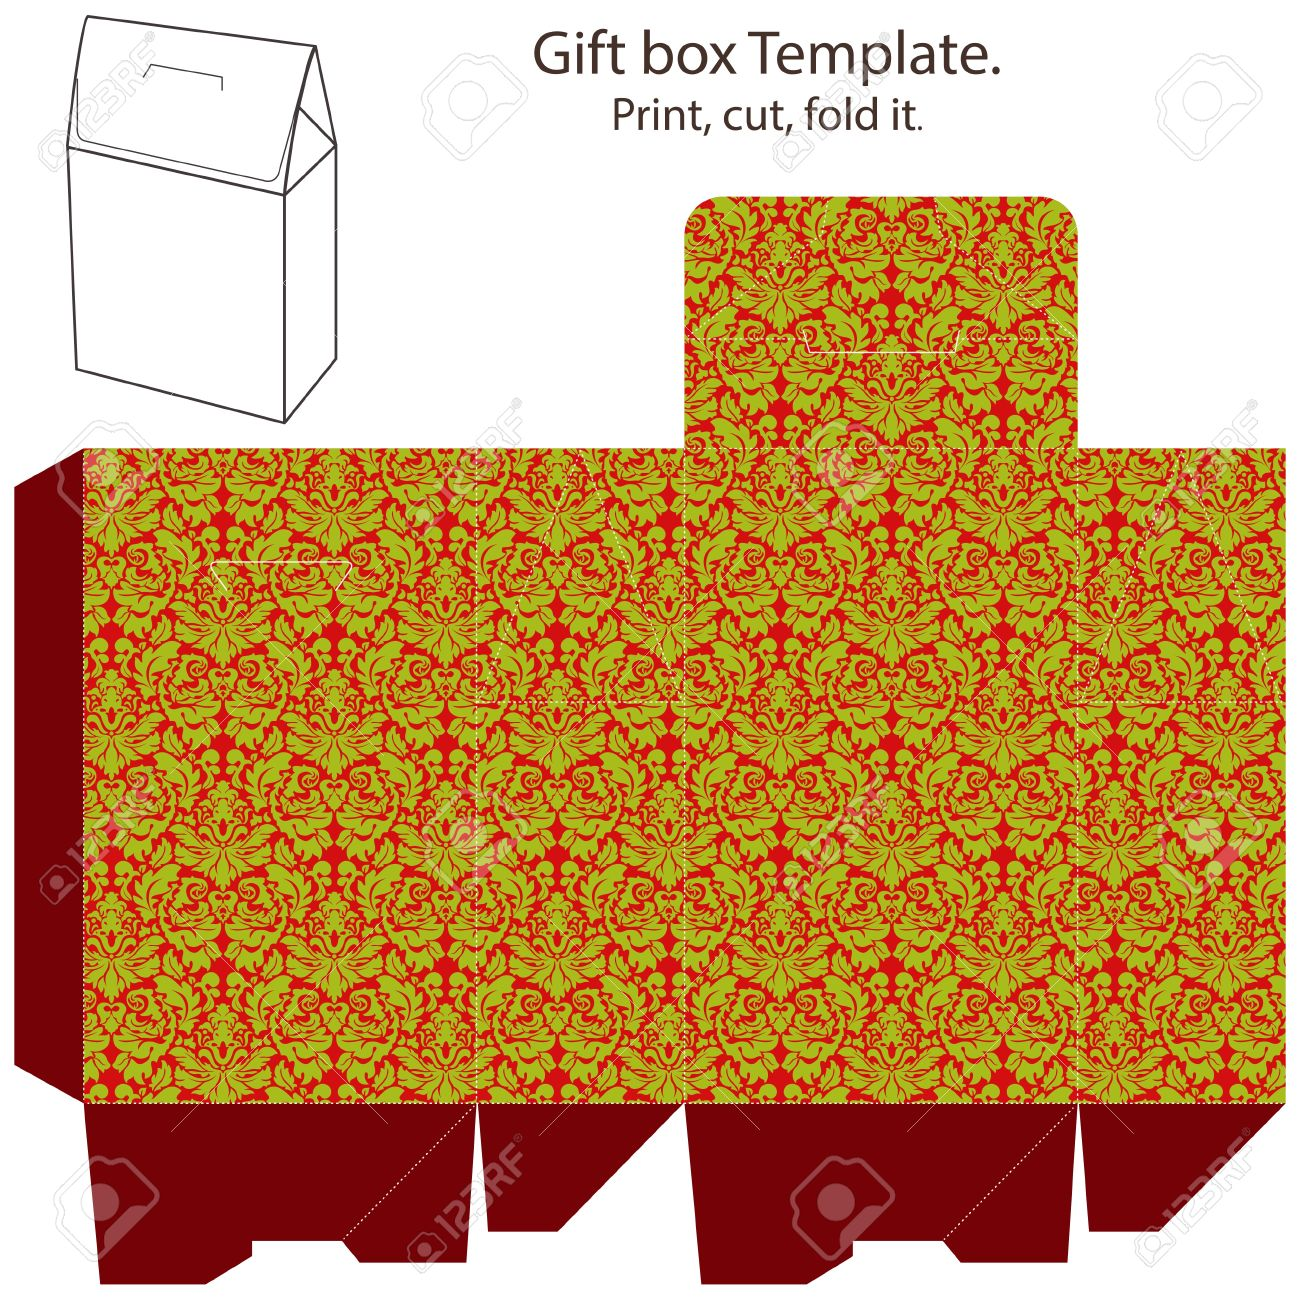 christmas gift box template abstract classic geometric christmas christmas gift box template abstract classic geometric christmas pattern empty label stock vector